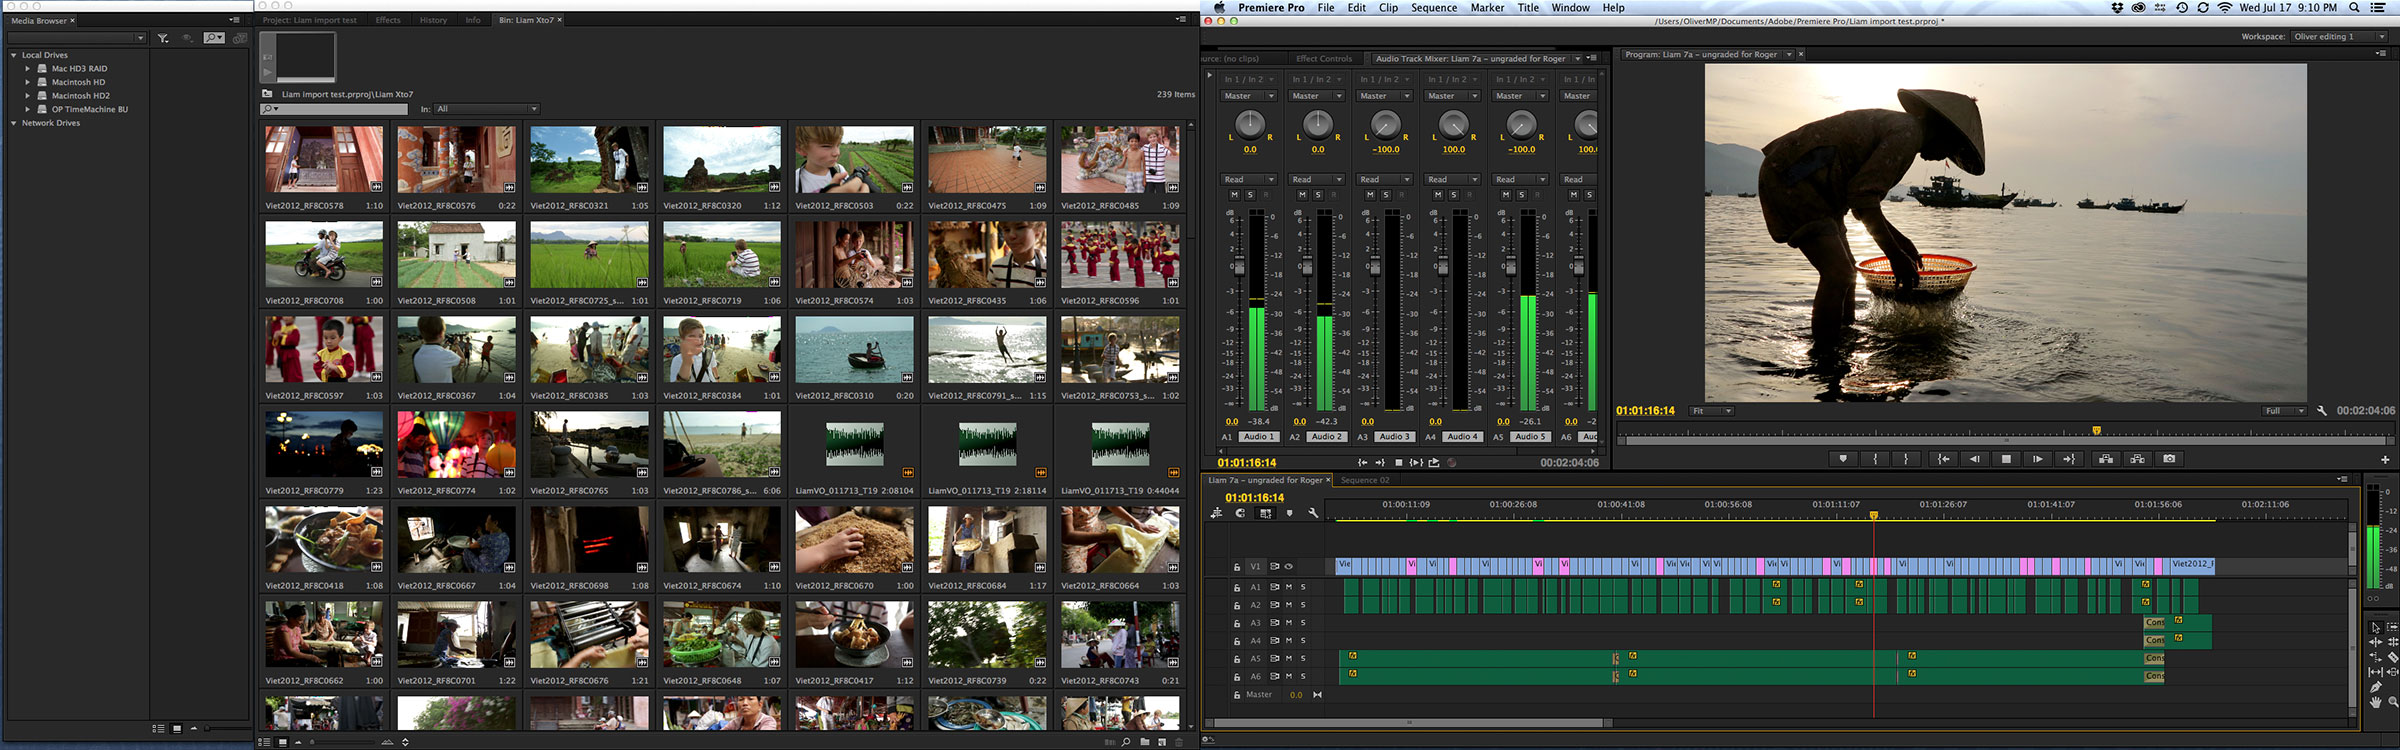 Adobe Premiere Pro CC « digitalfilms